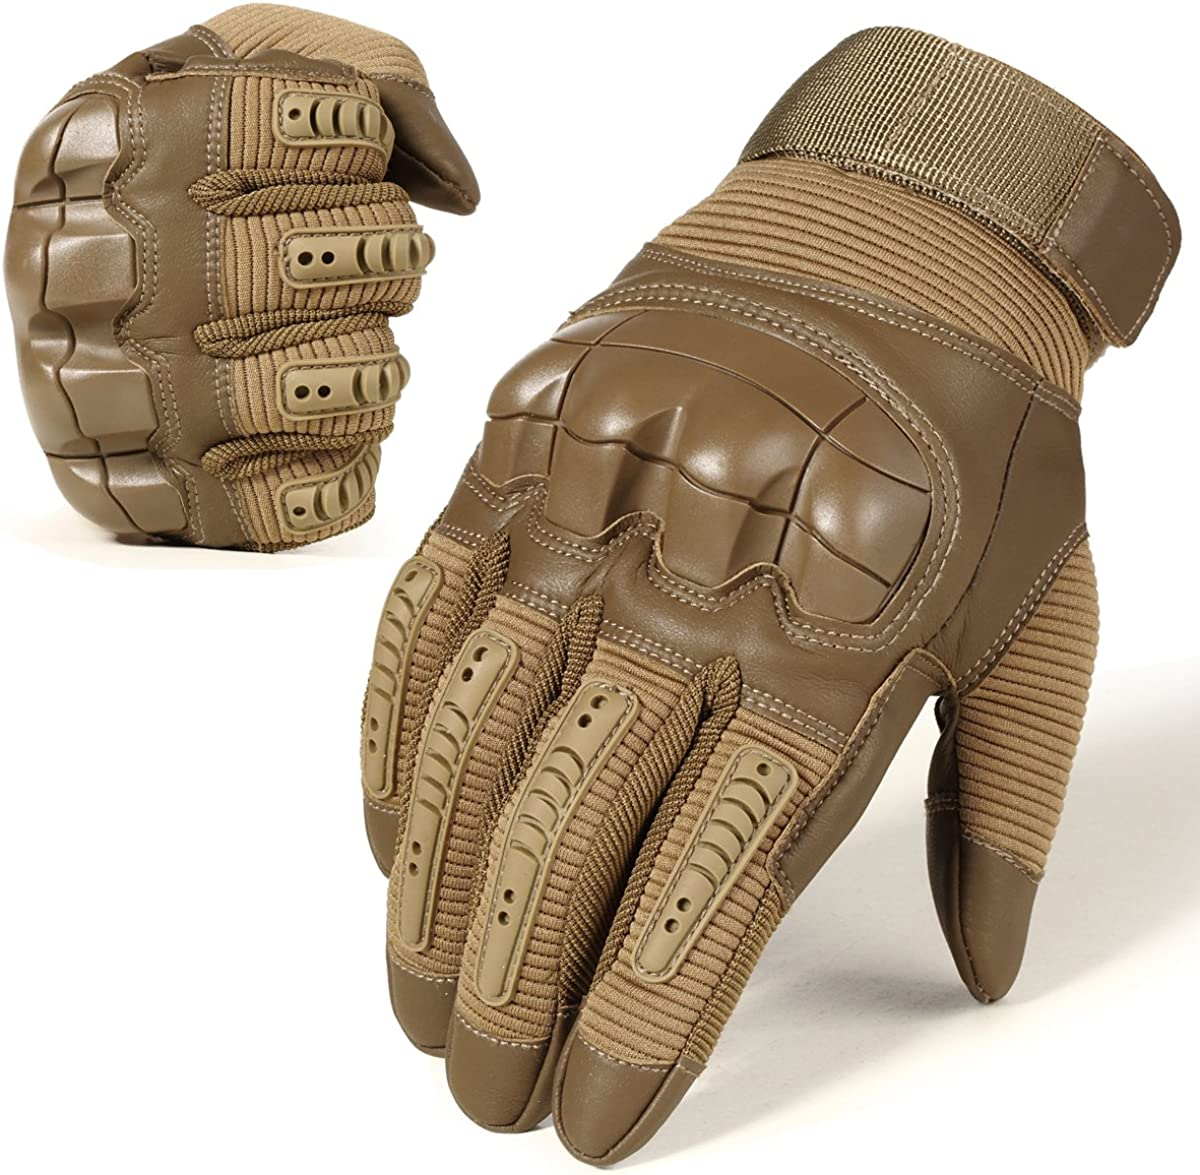 WTACTFUL Motorbike Gloves Touchscreen Full Finger Gloves Protective for Motorcycle Racing ATV Off Road Cycling Work